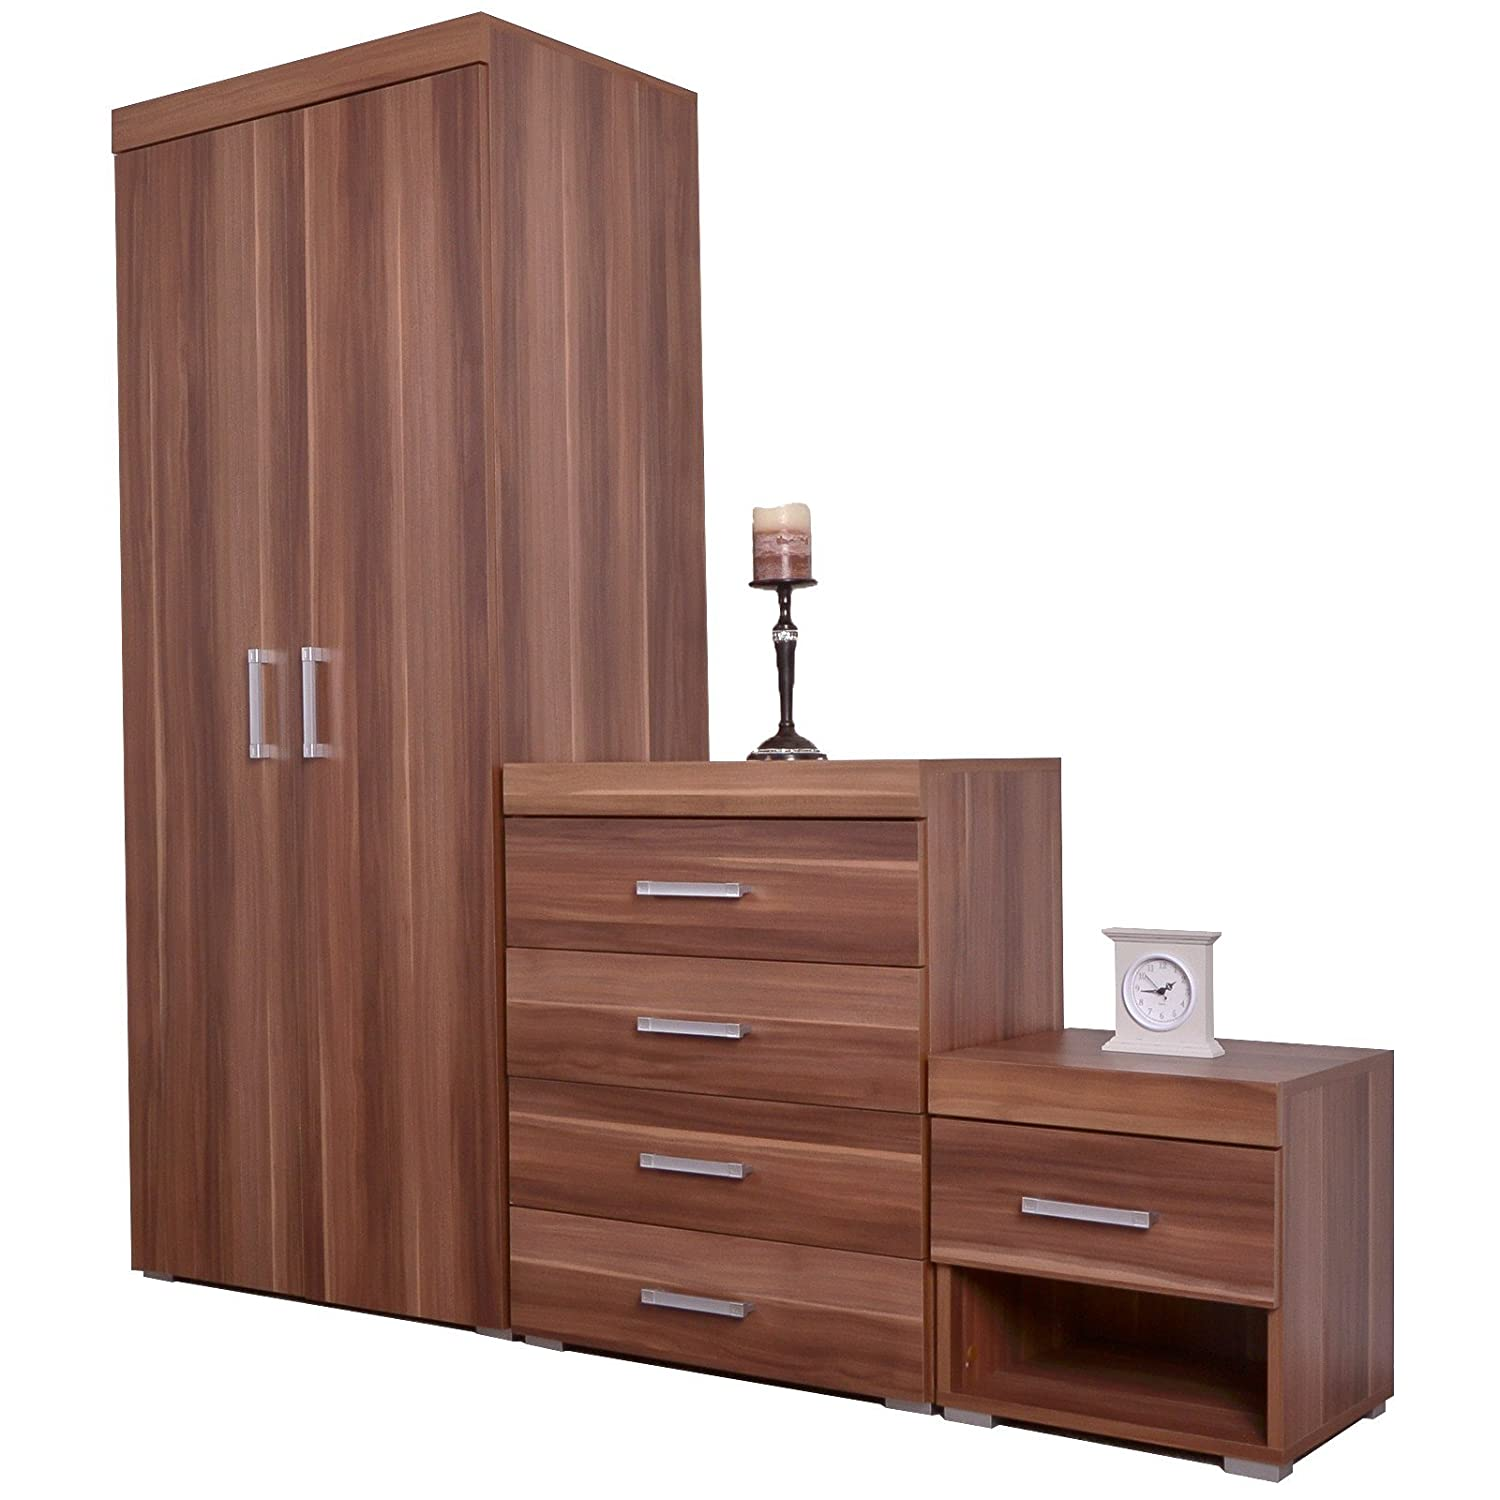 DP Bedroom Furniture 3 Piece Set Chest Drawers Bedside Table & Wardrobe Walnut